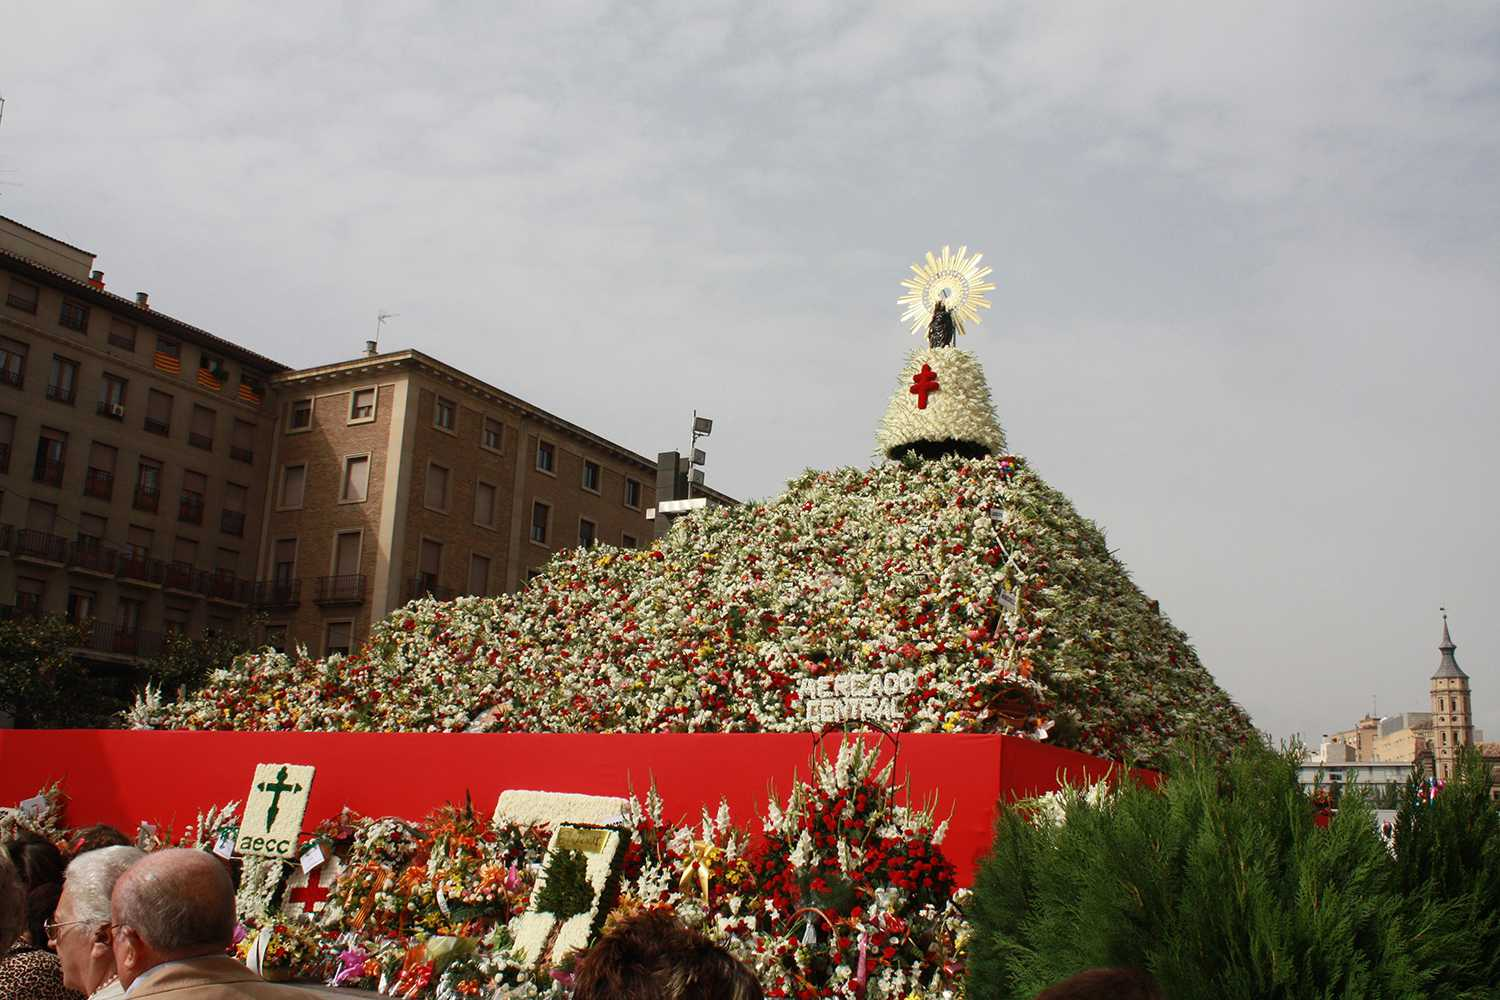 Altar piled high with flowers for Fiestas del Pilar